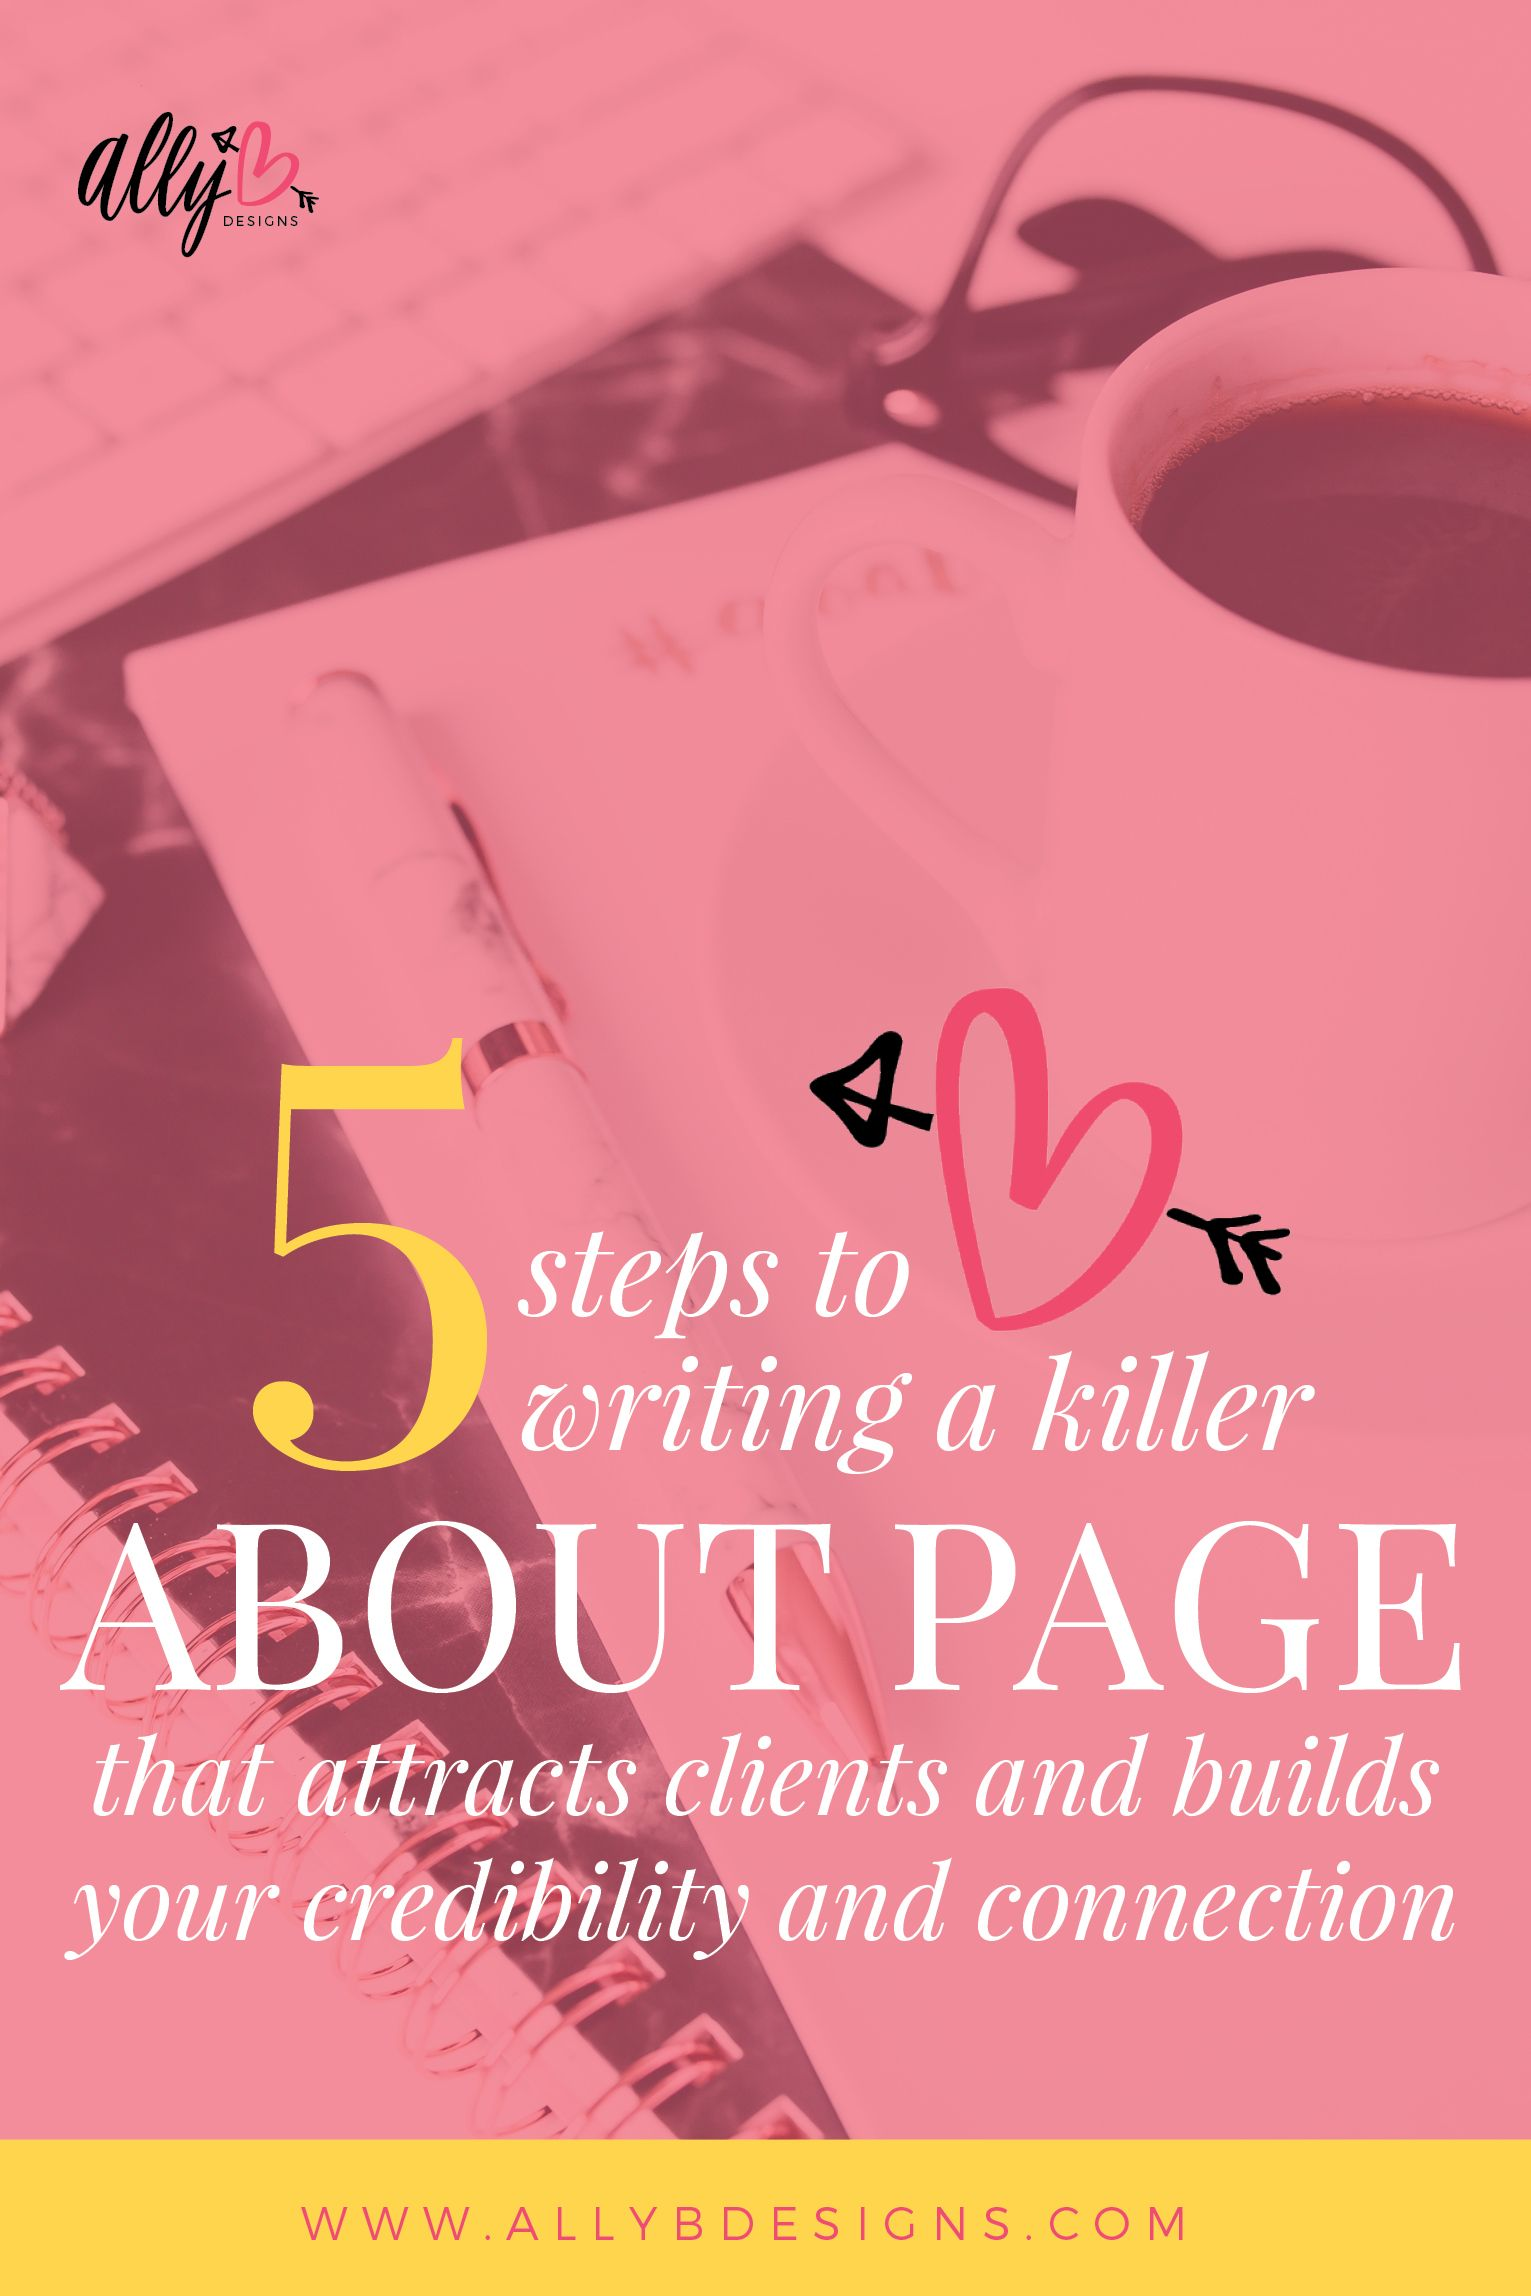 cover letter samples%0A   Steps To Writing A Killer About Page Photography Website  D  a        e a     db   f ad